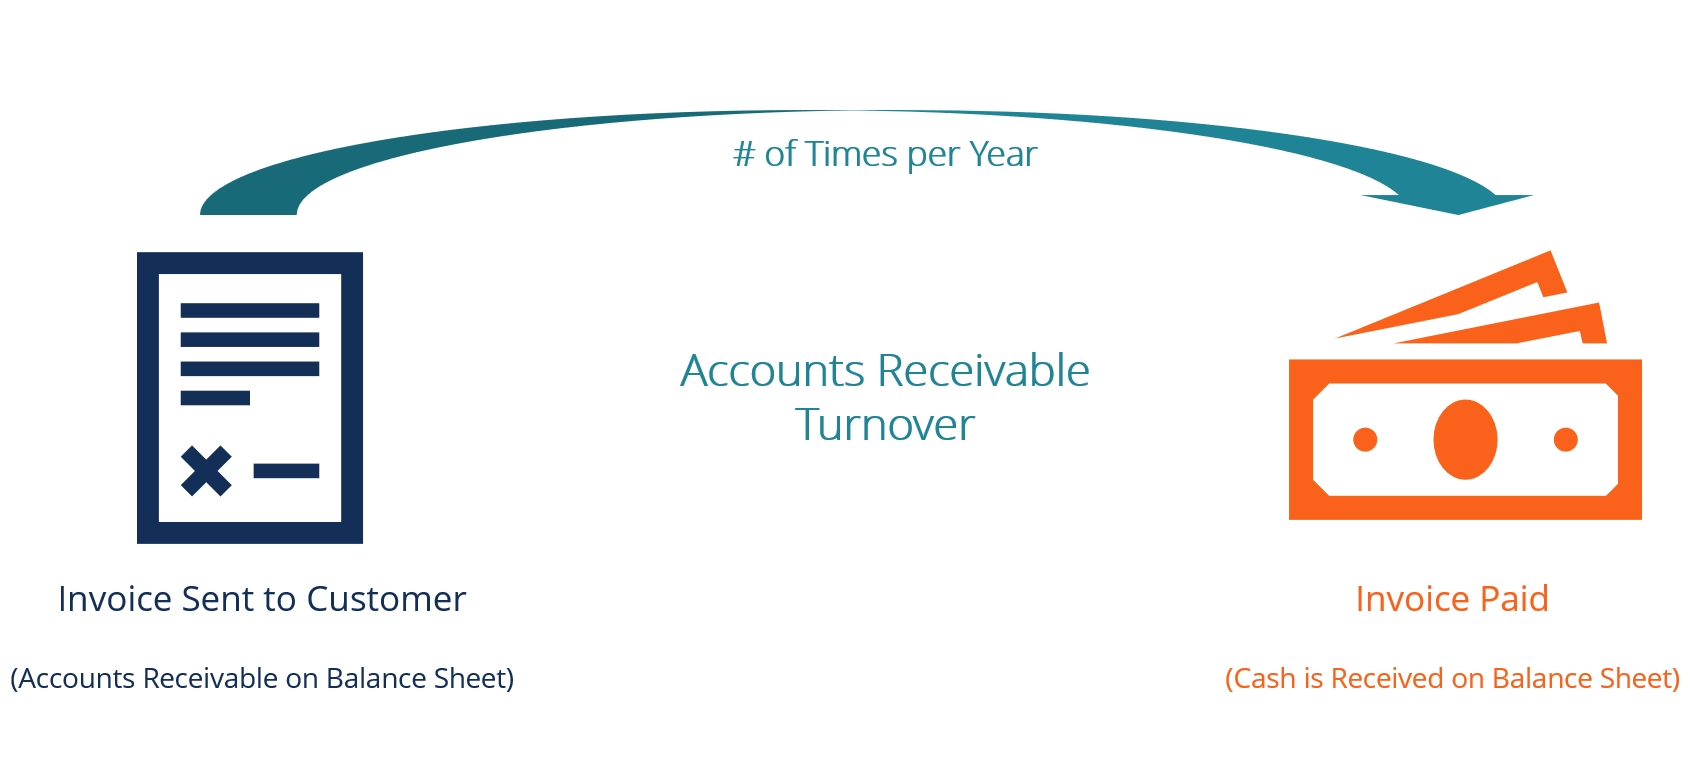 accounts receivable turnover ratio formula examples meaning of we will credit december 2017 invoice